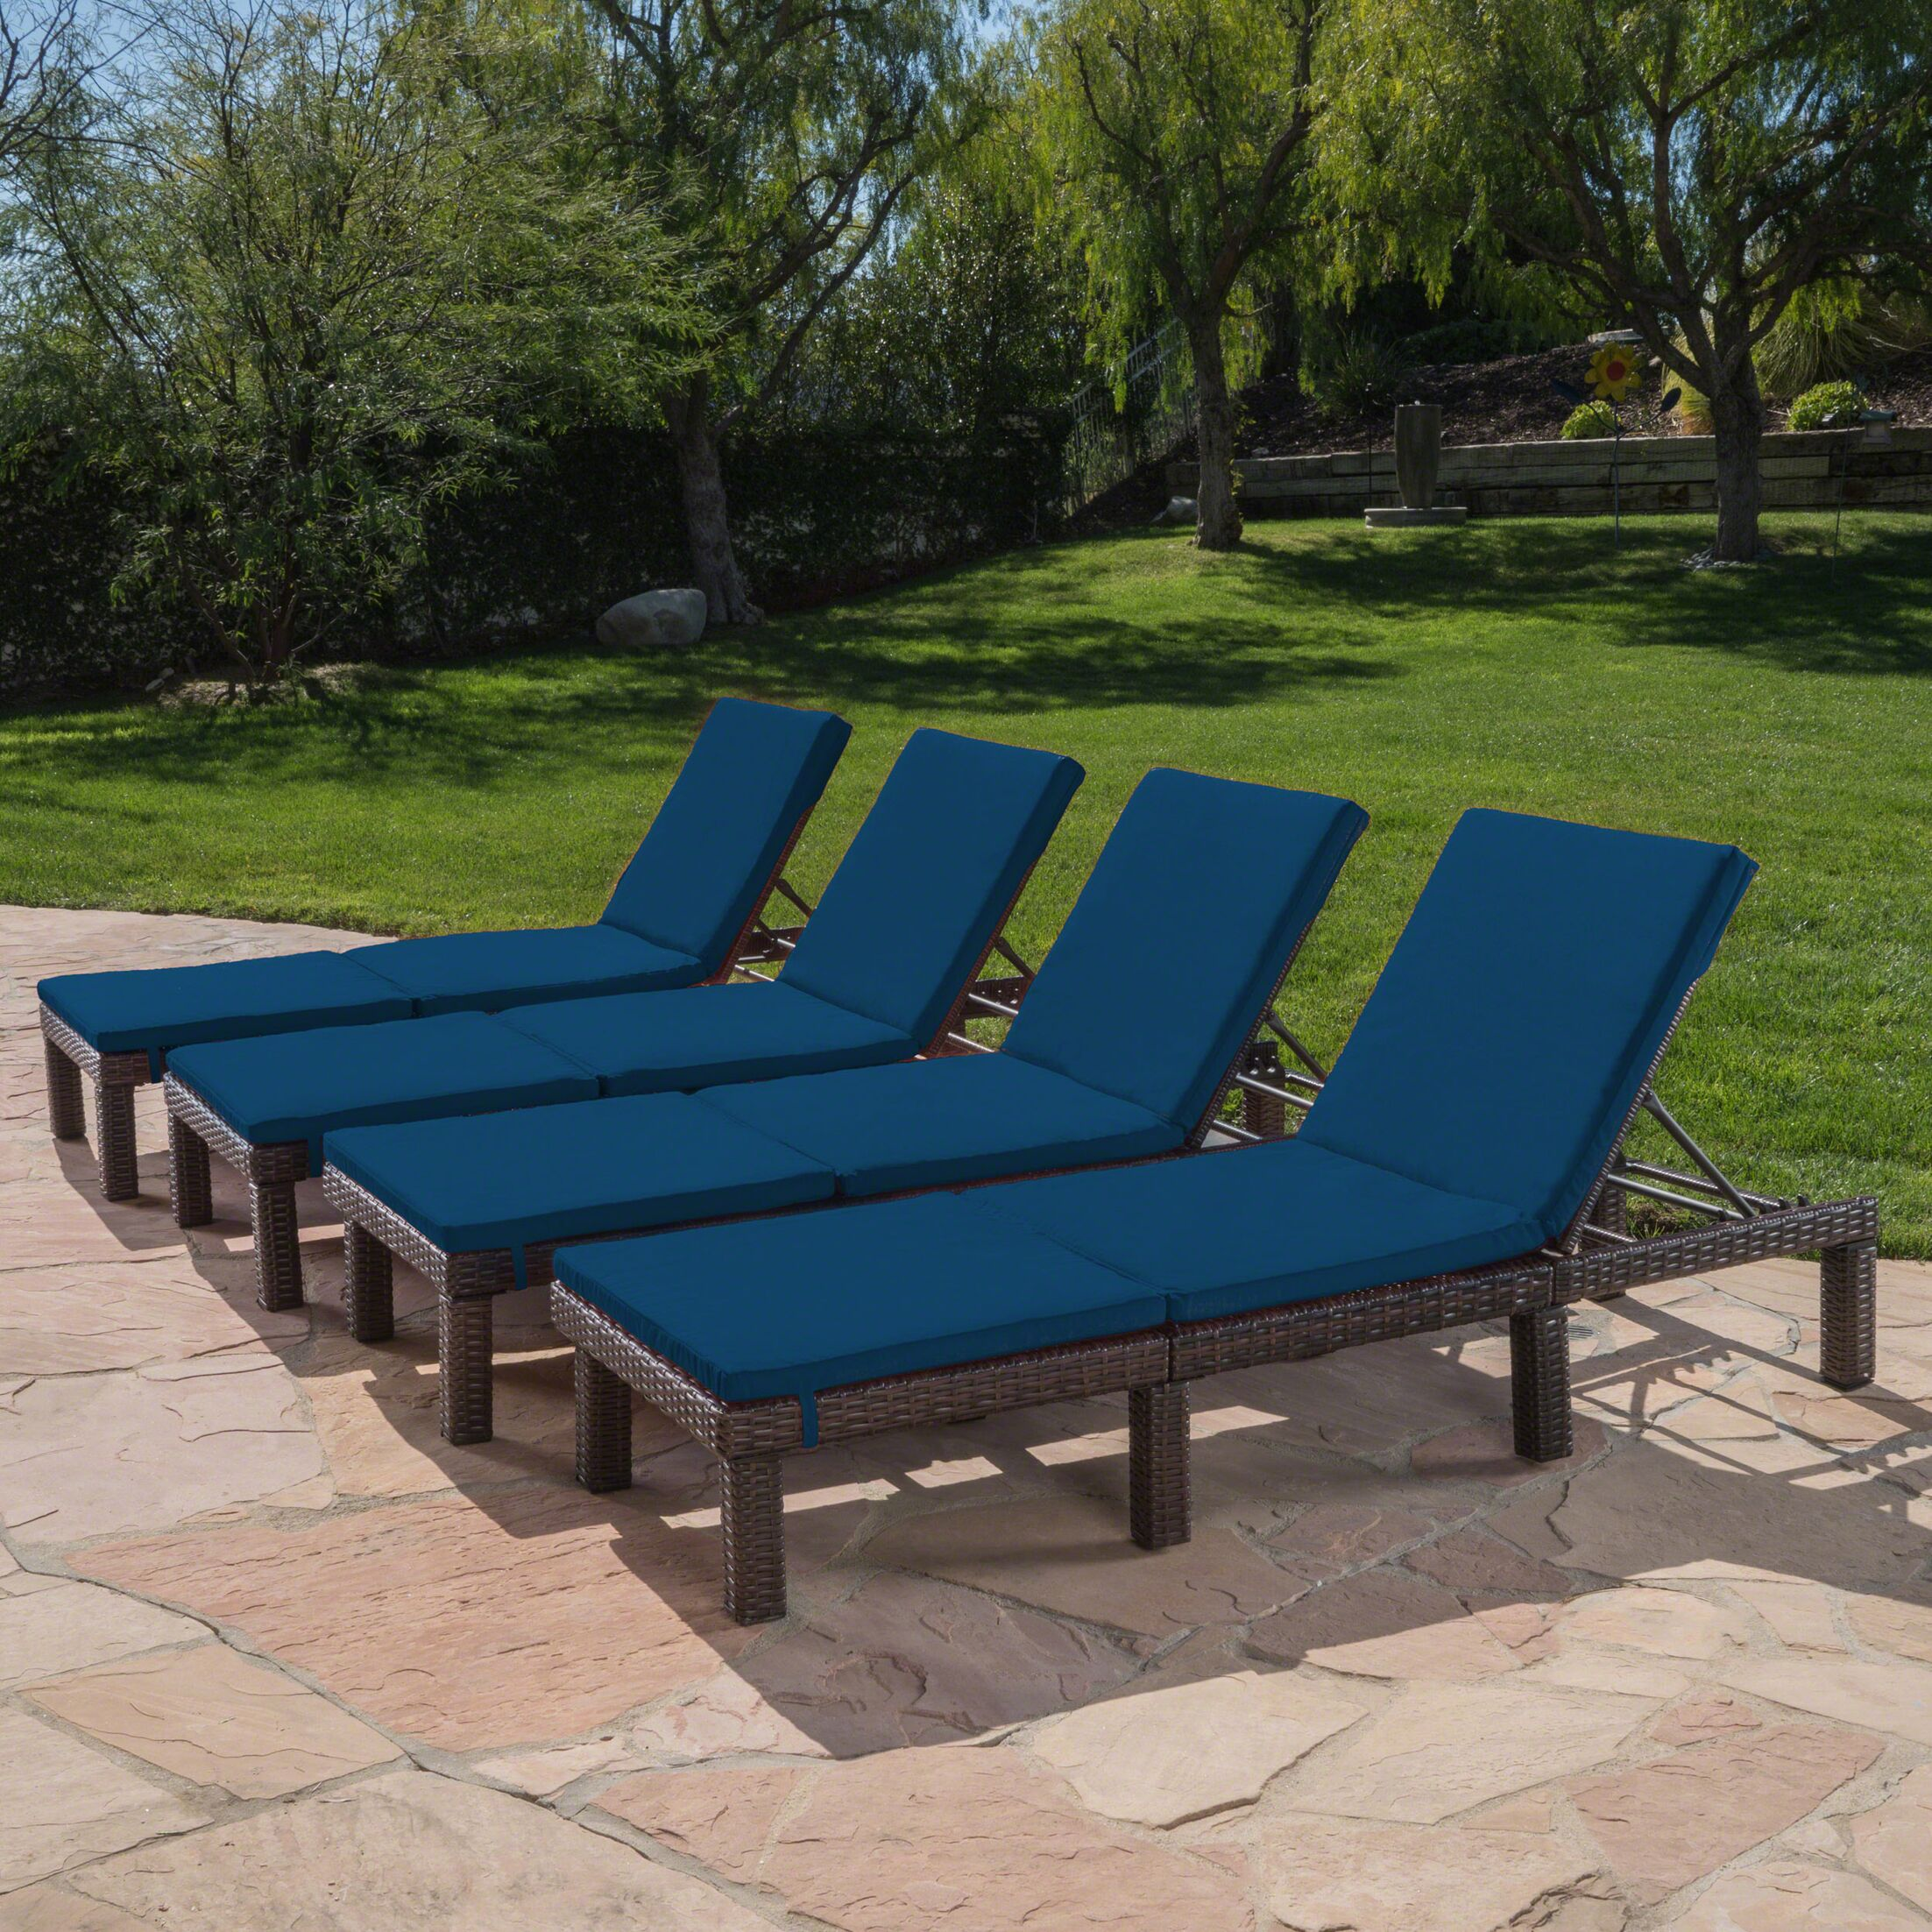 Caston Reclining Chaise Lounge with Cushion Color: Blue